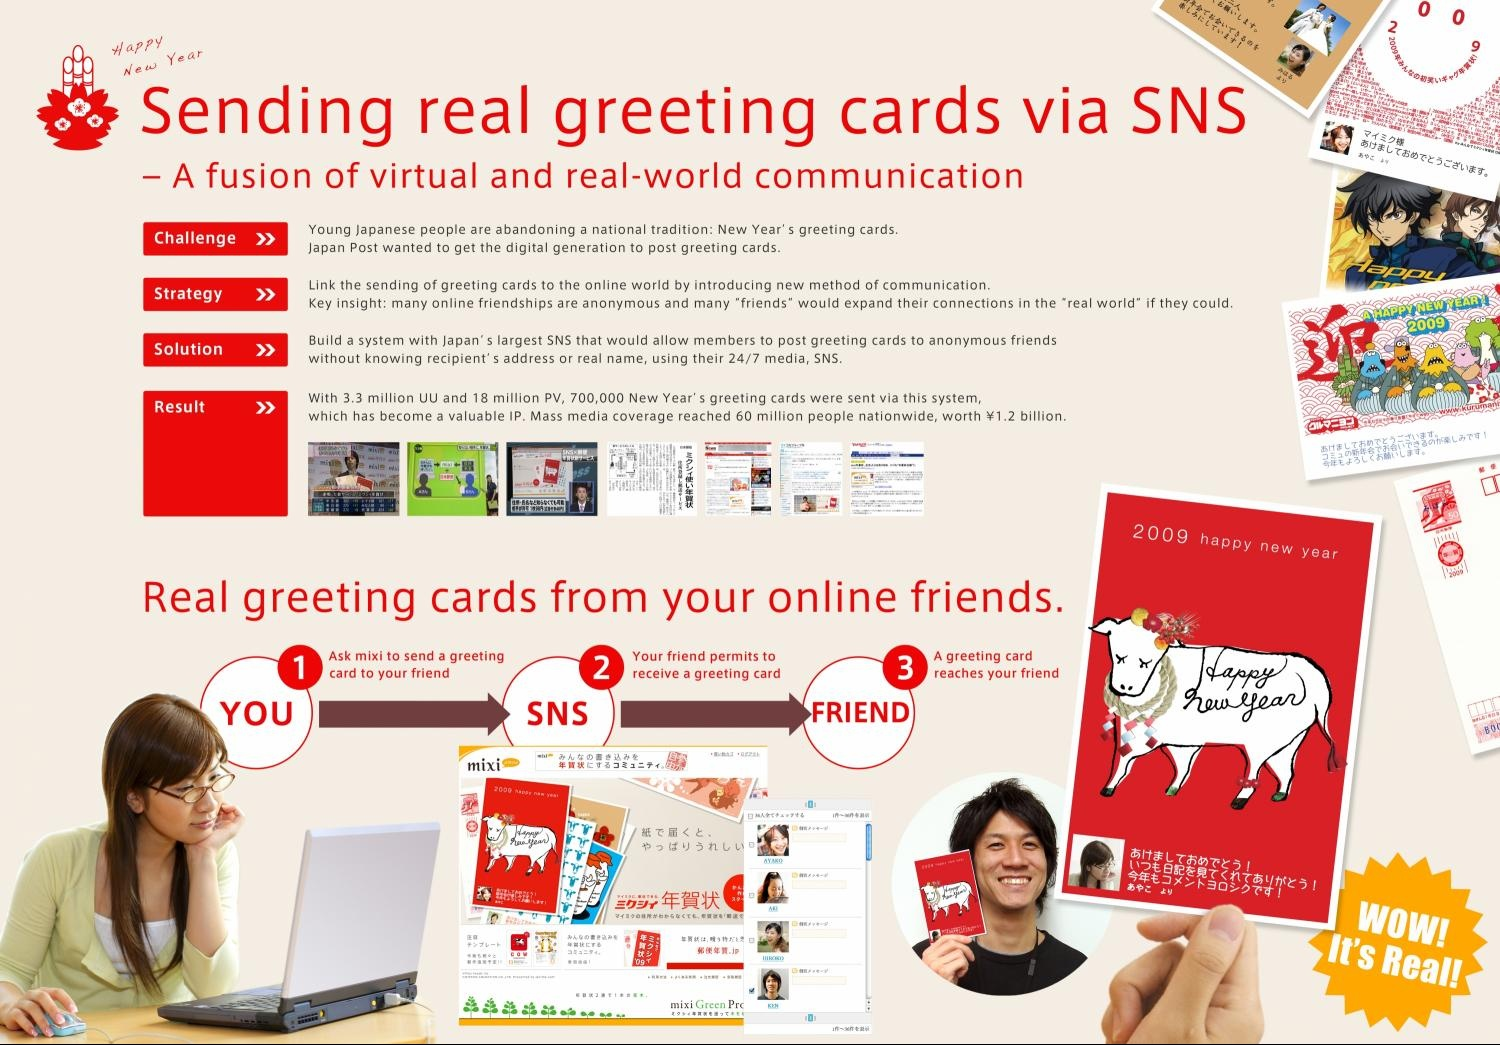 SENDING REAL GREETING CARDS